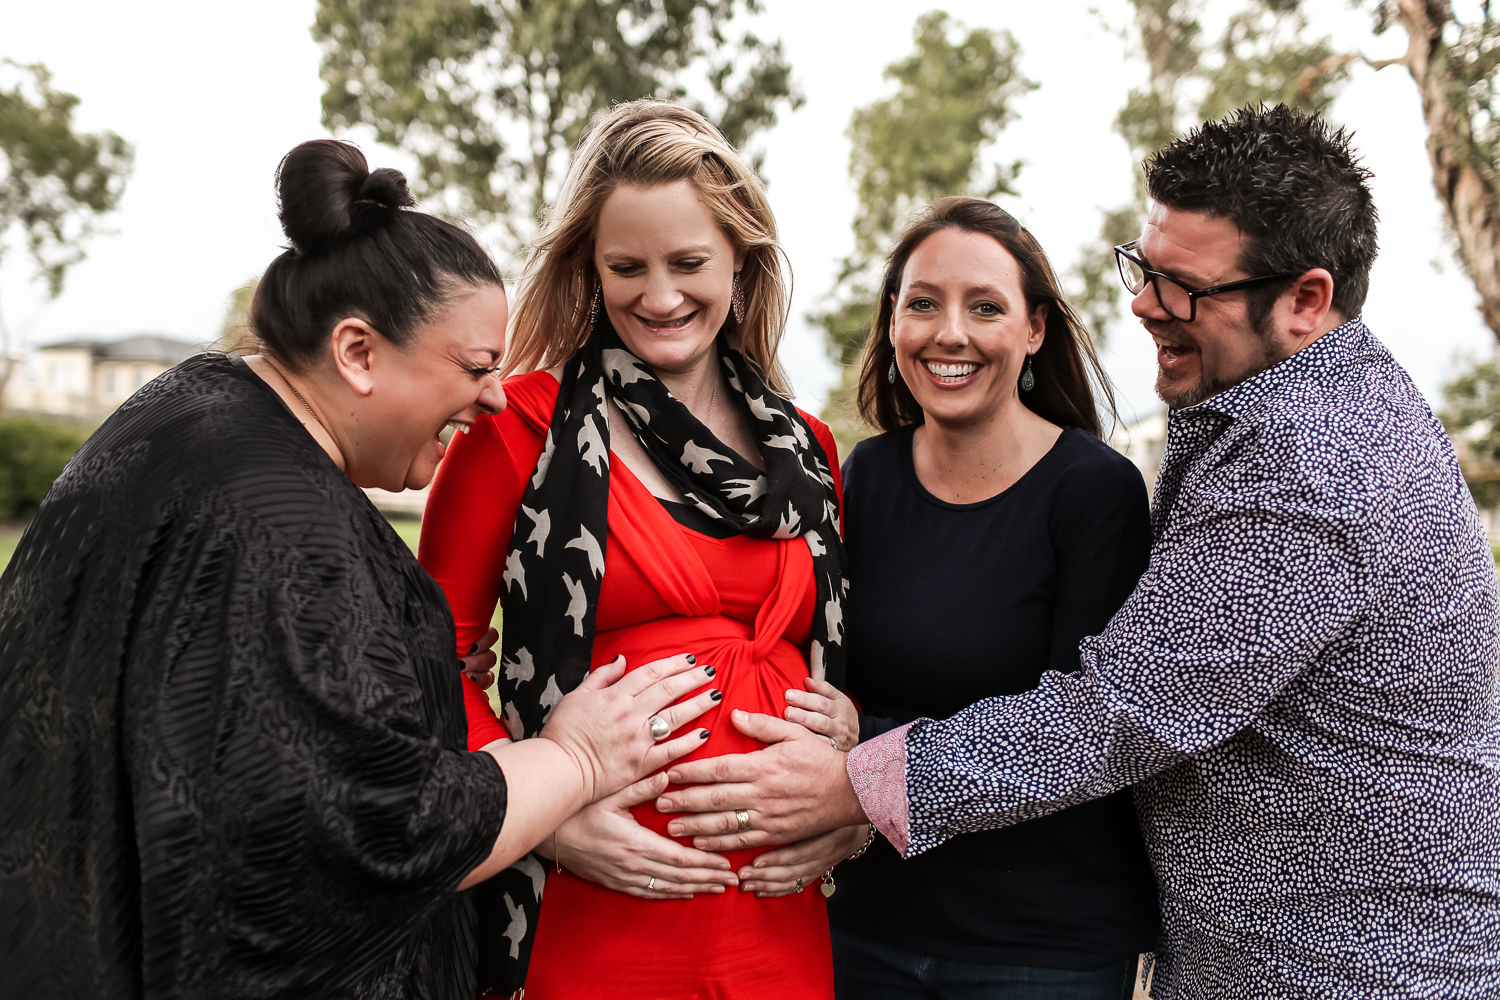 melbourne couple celebrating surrogacy journey with egg donor and surrogate in Melbourne